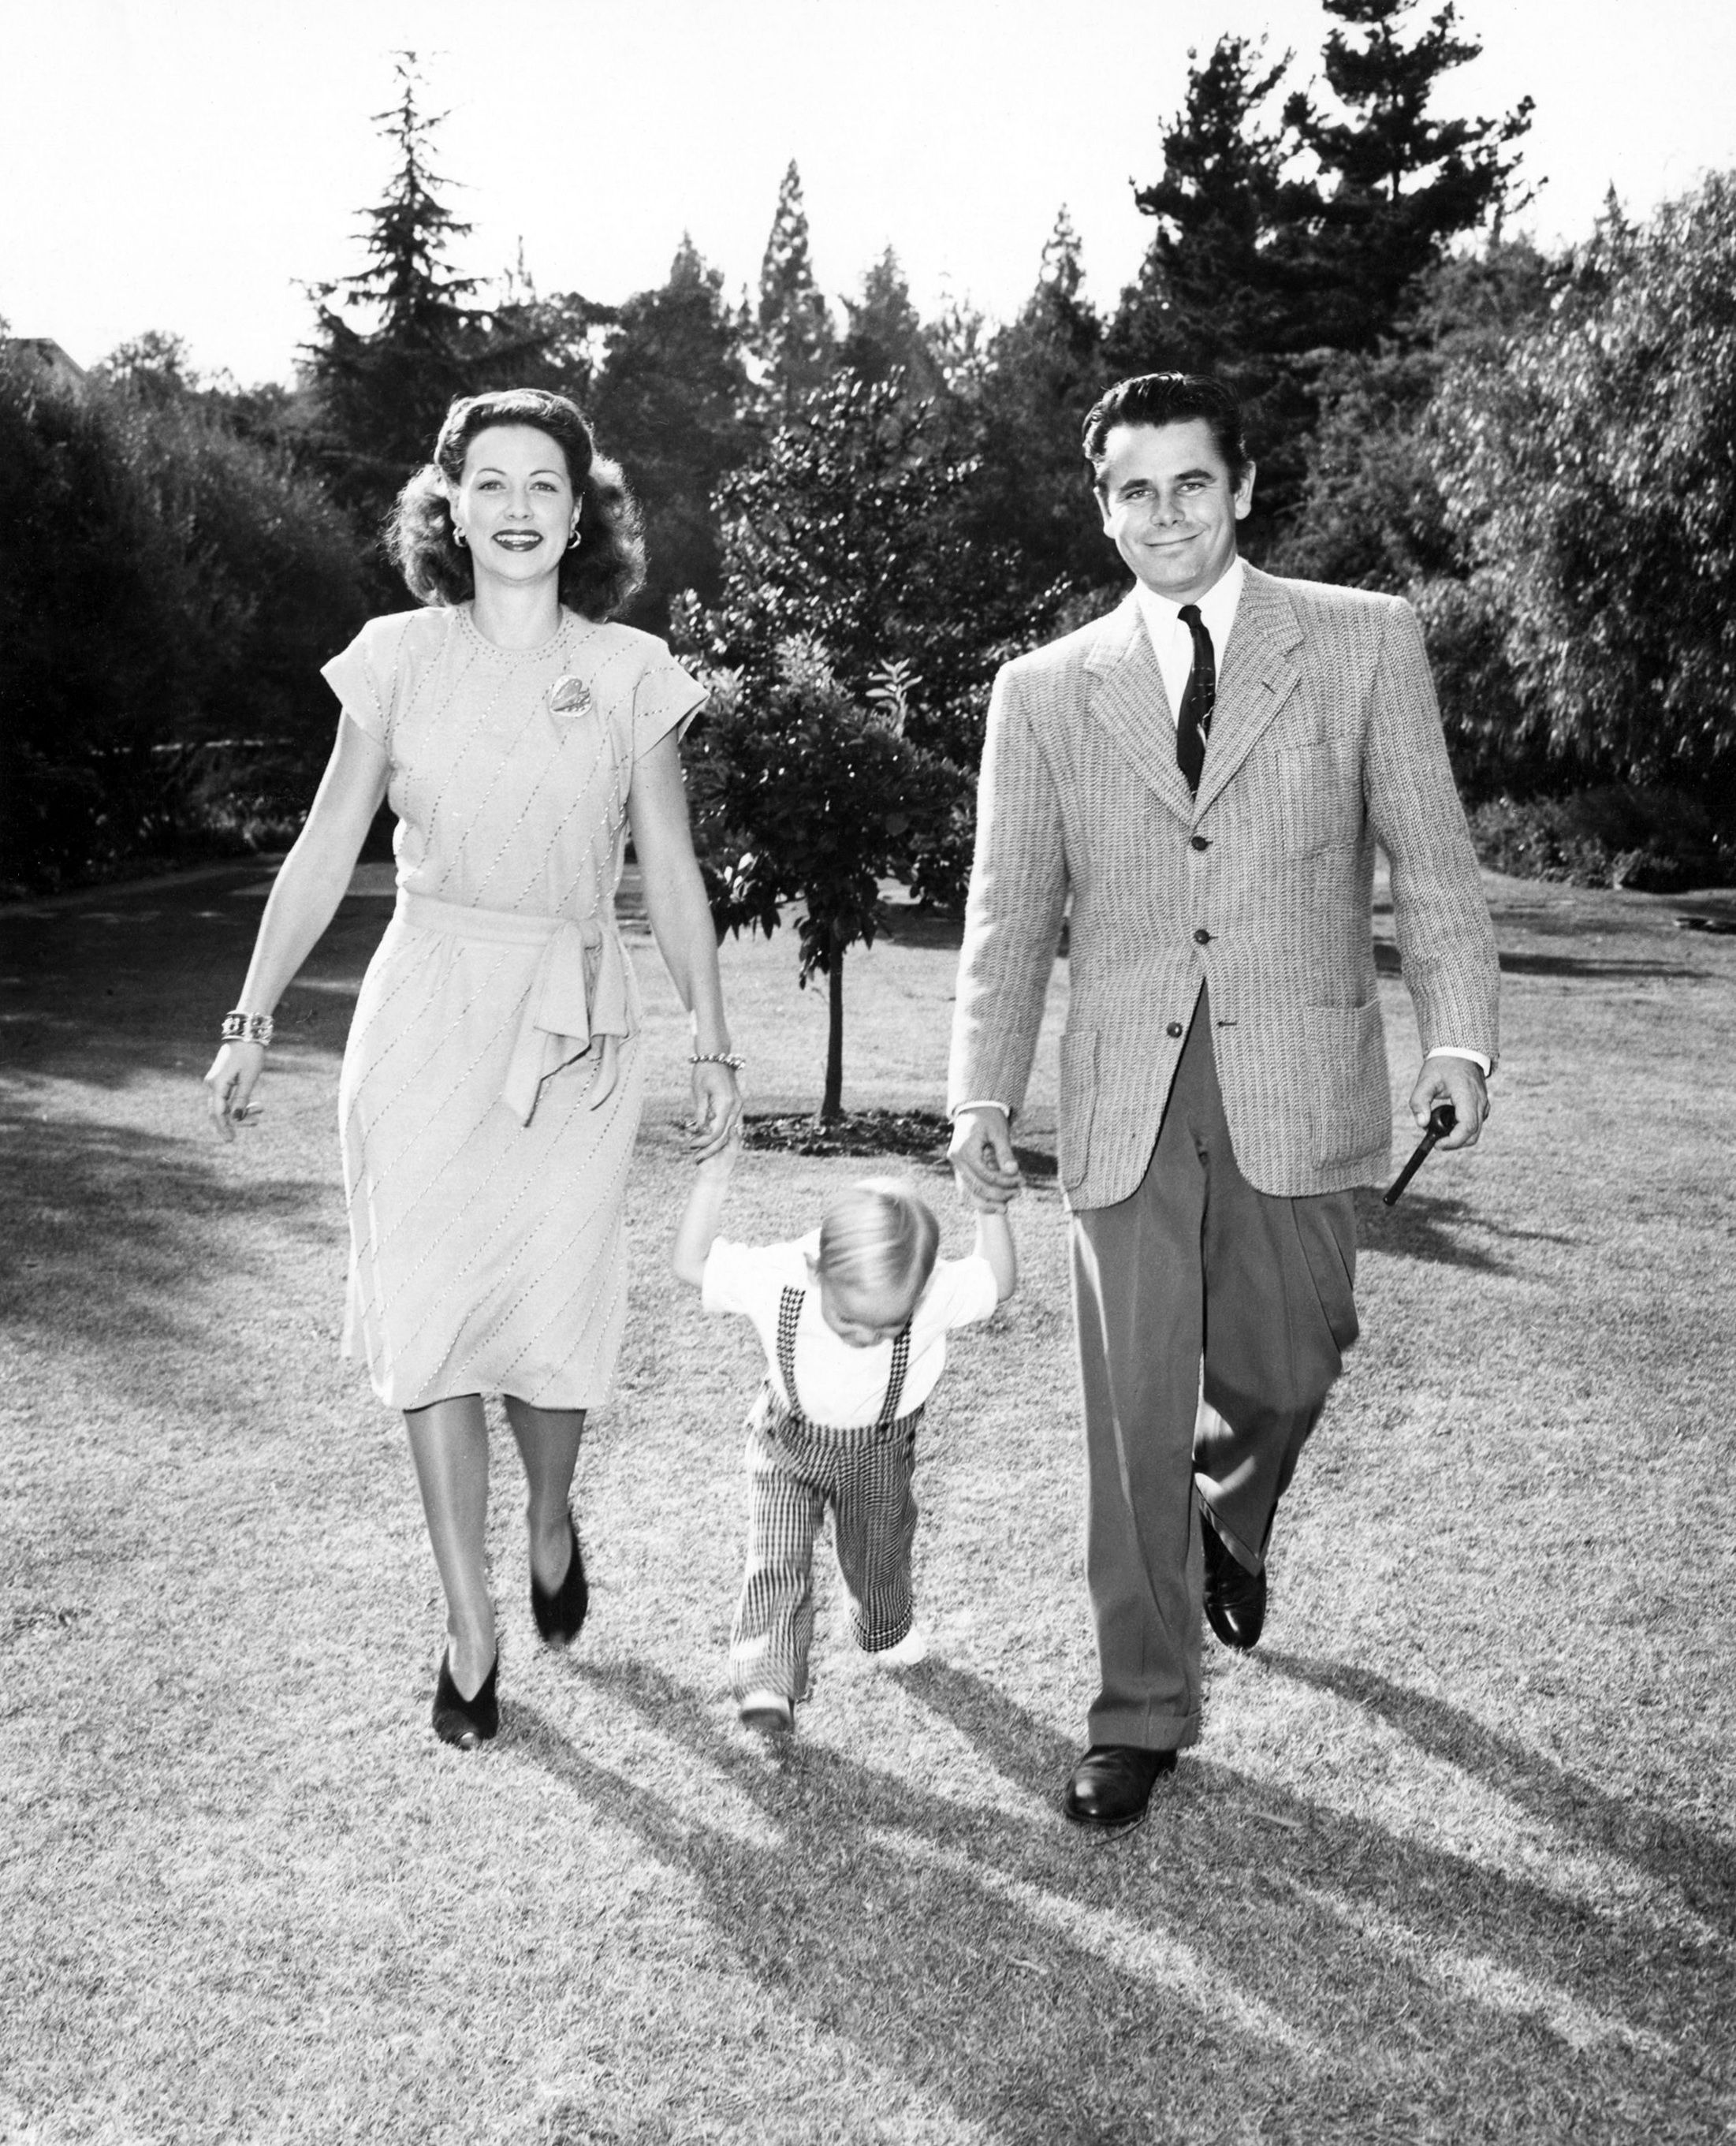 Glenn Ford 1 De Mayo De 1916 Quebec Canada 30 De Agosto De 2006 Beverly Hills Eleanor Powell Glen Ford Old Movie Stars